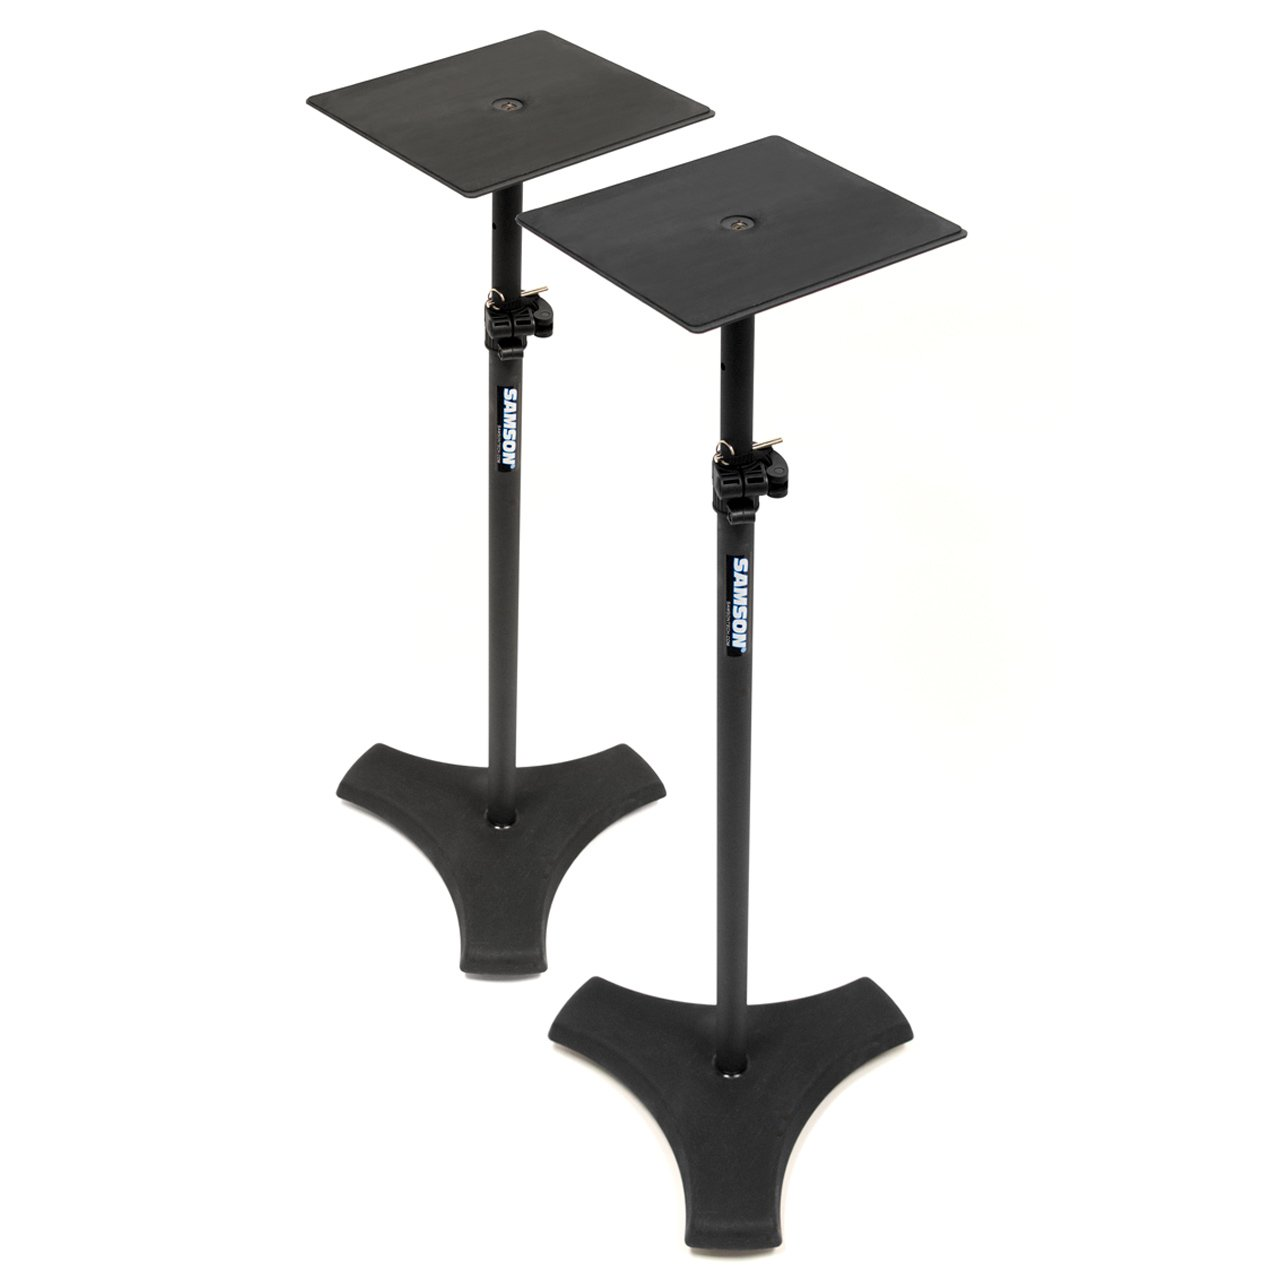 Studio Monitor Stands - Samson MS300 - Studio Monitor Stands (PAIR)